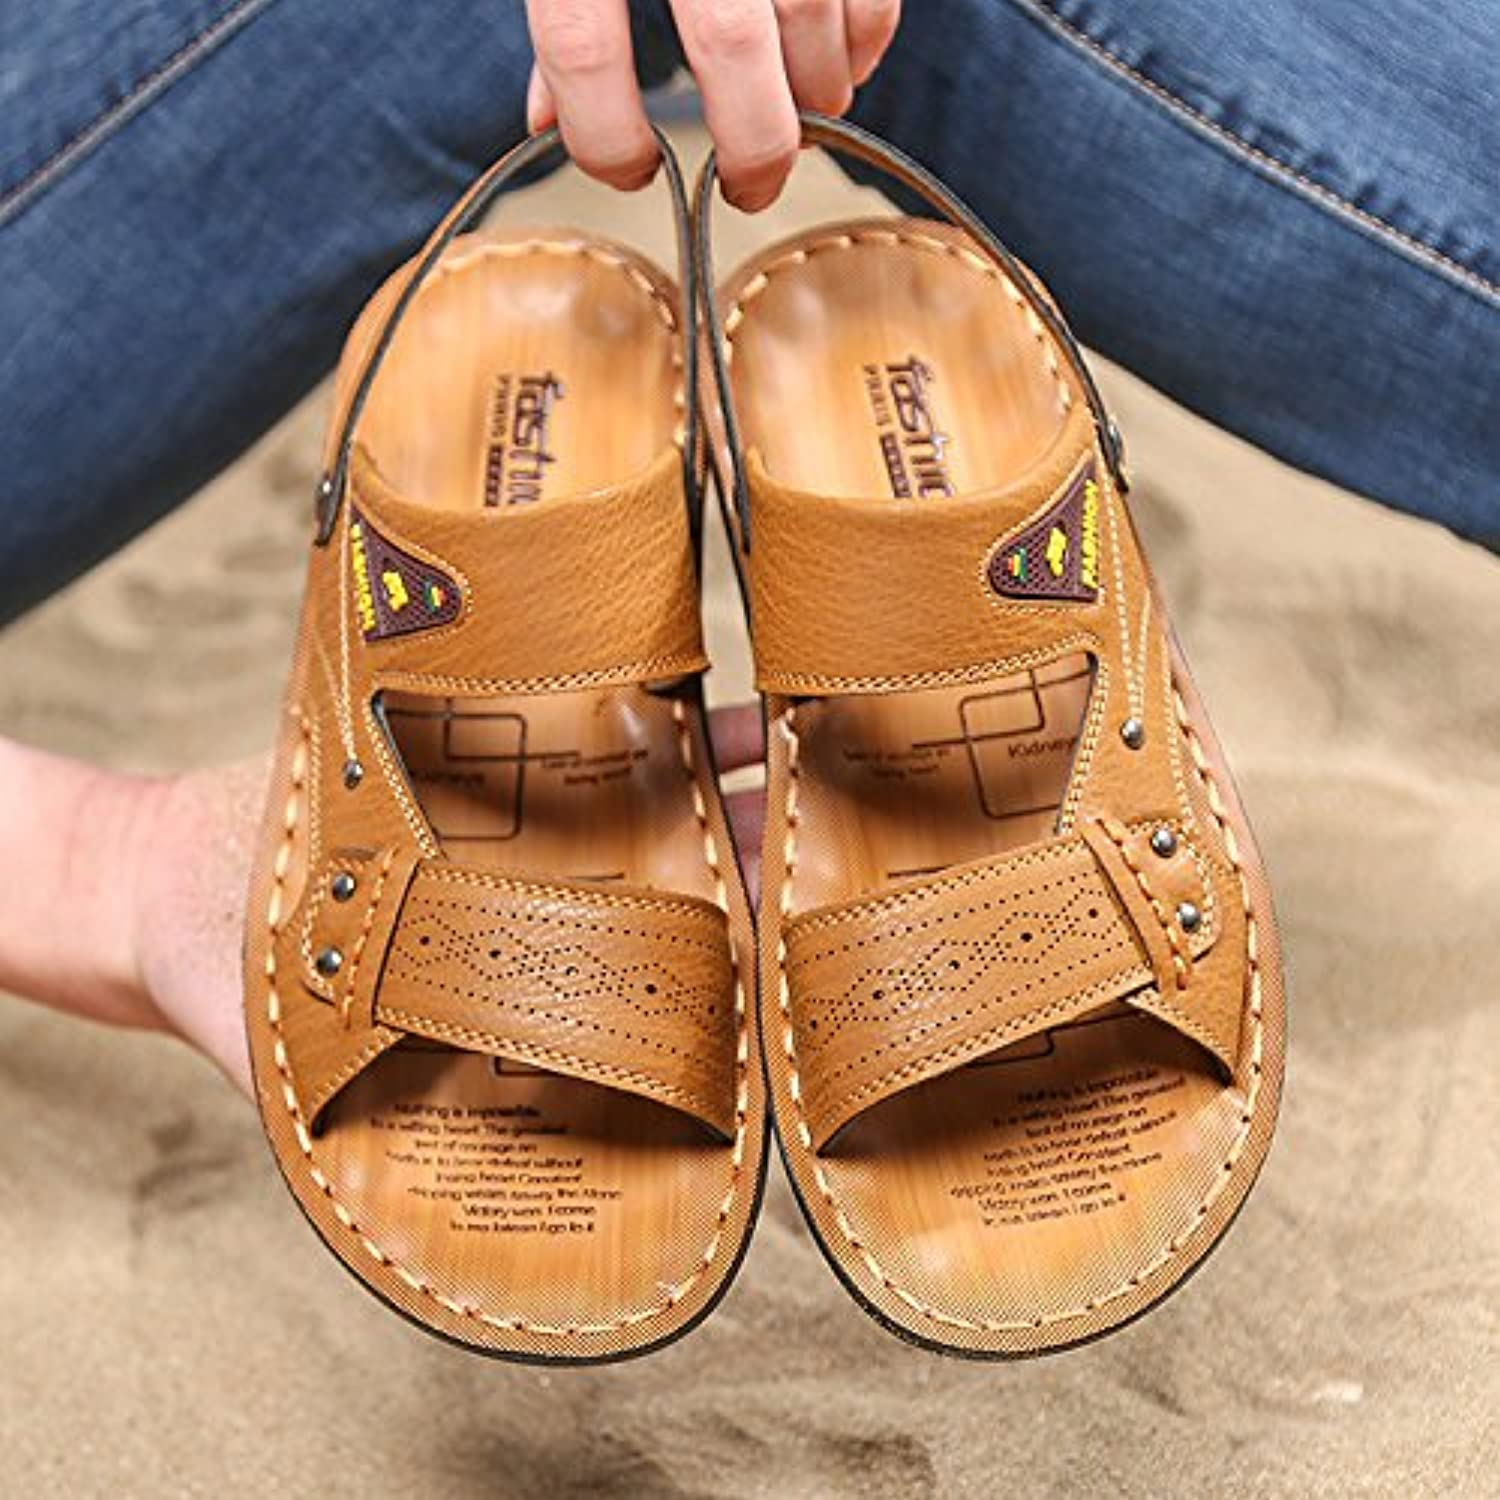 Men's Sandals, Leather Sandals, Young Summer Slippers